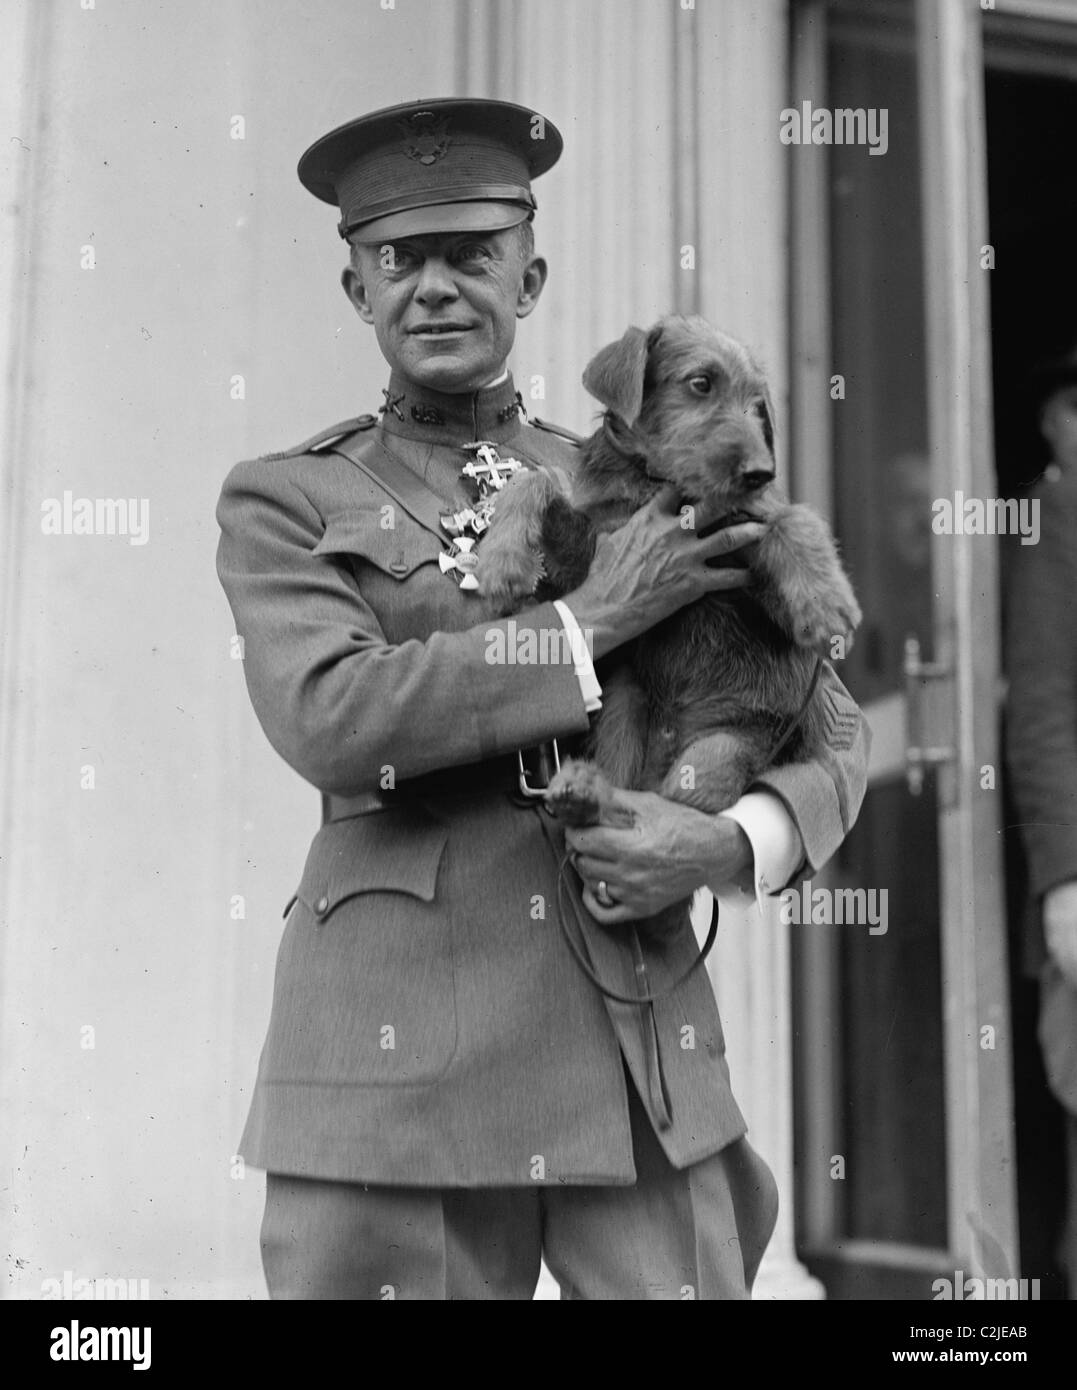 Highly Decorated WWI Marine Corps Colonel Holds a dog endearingly - Stock Image